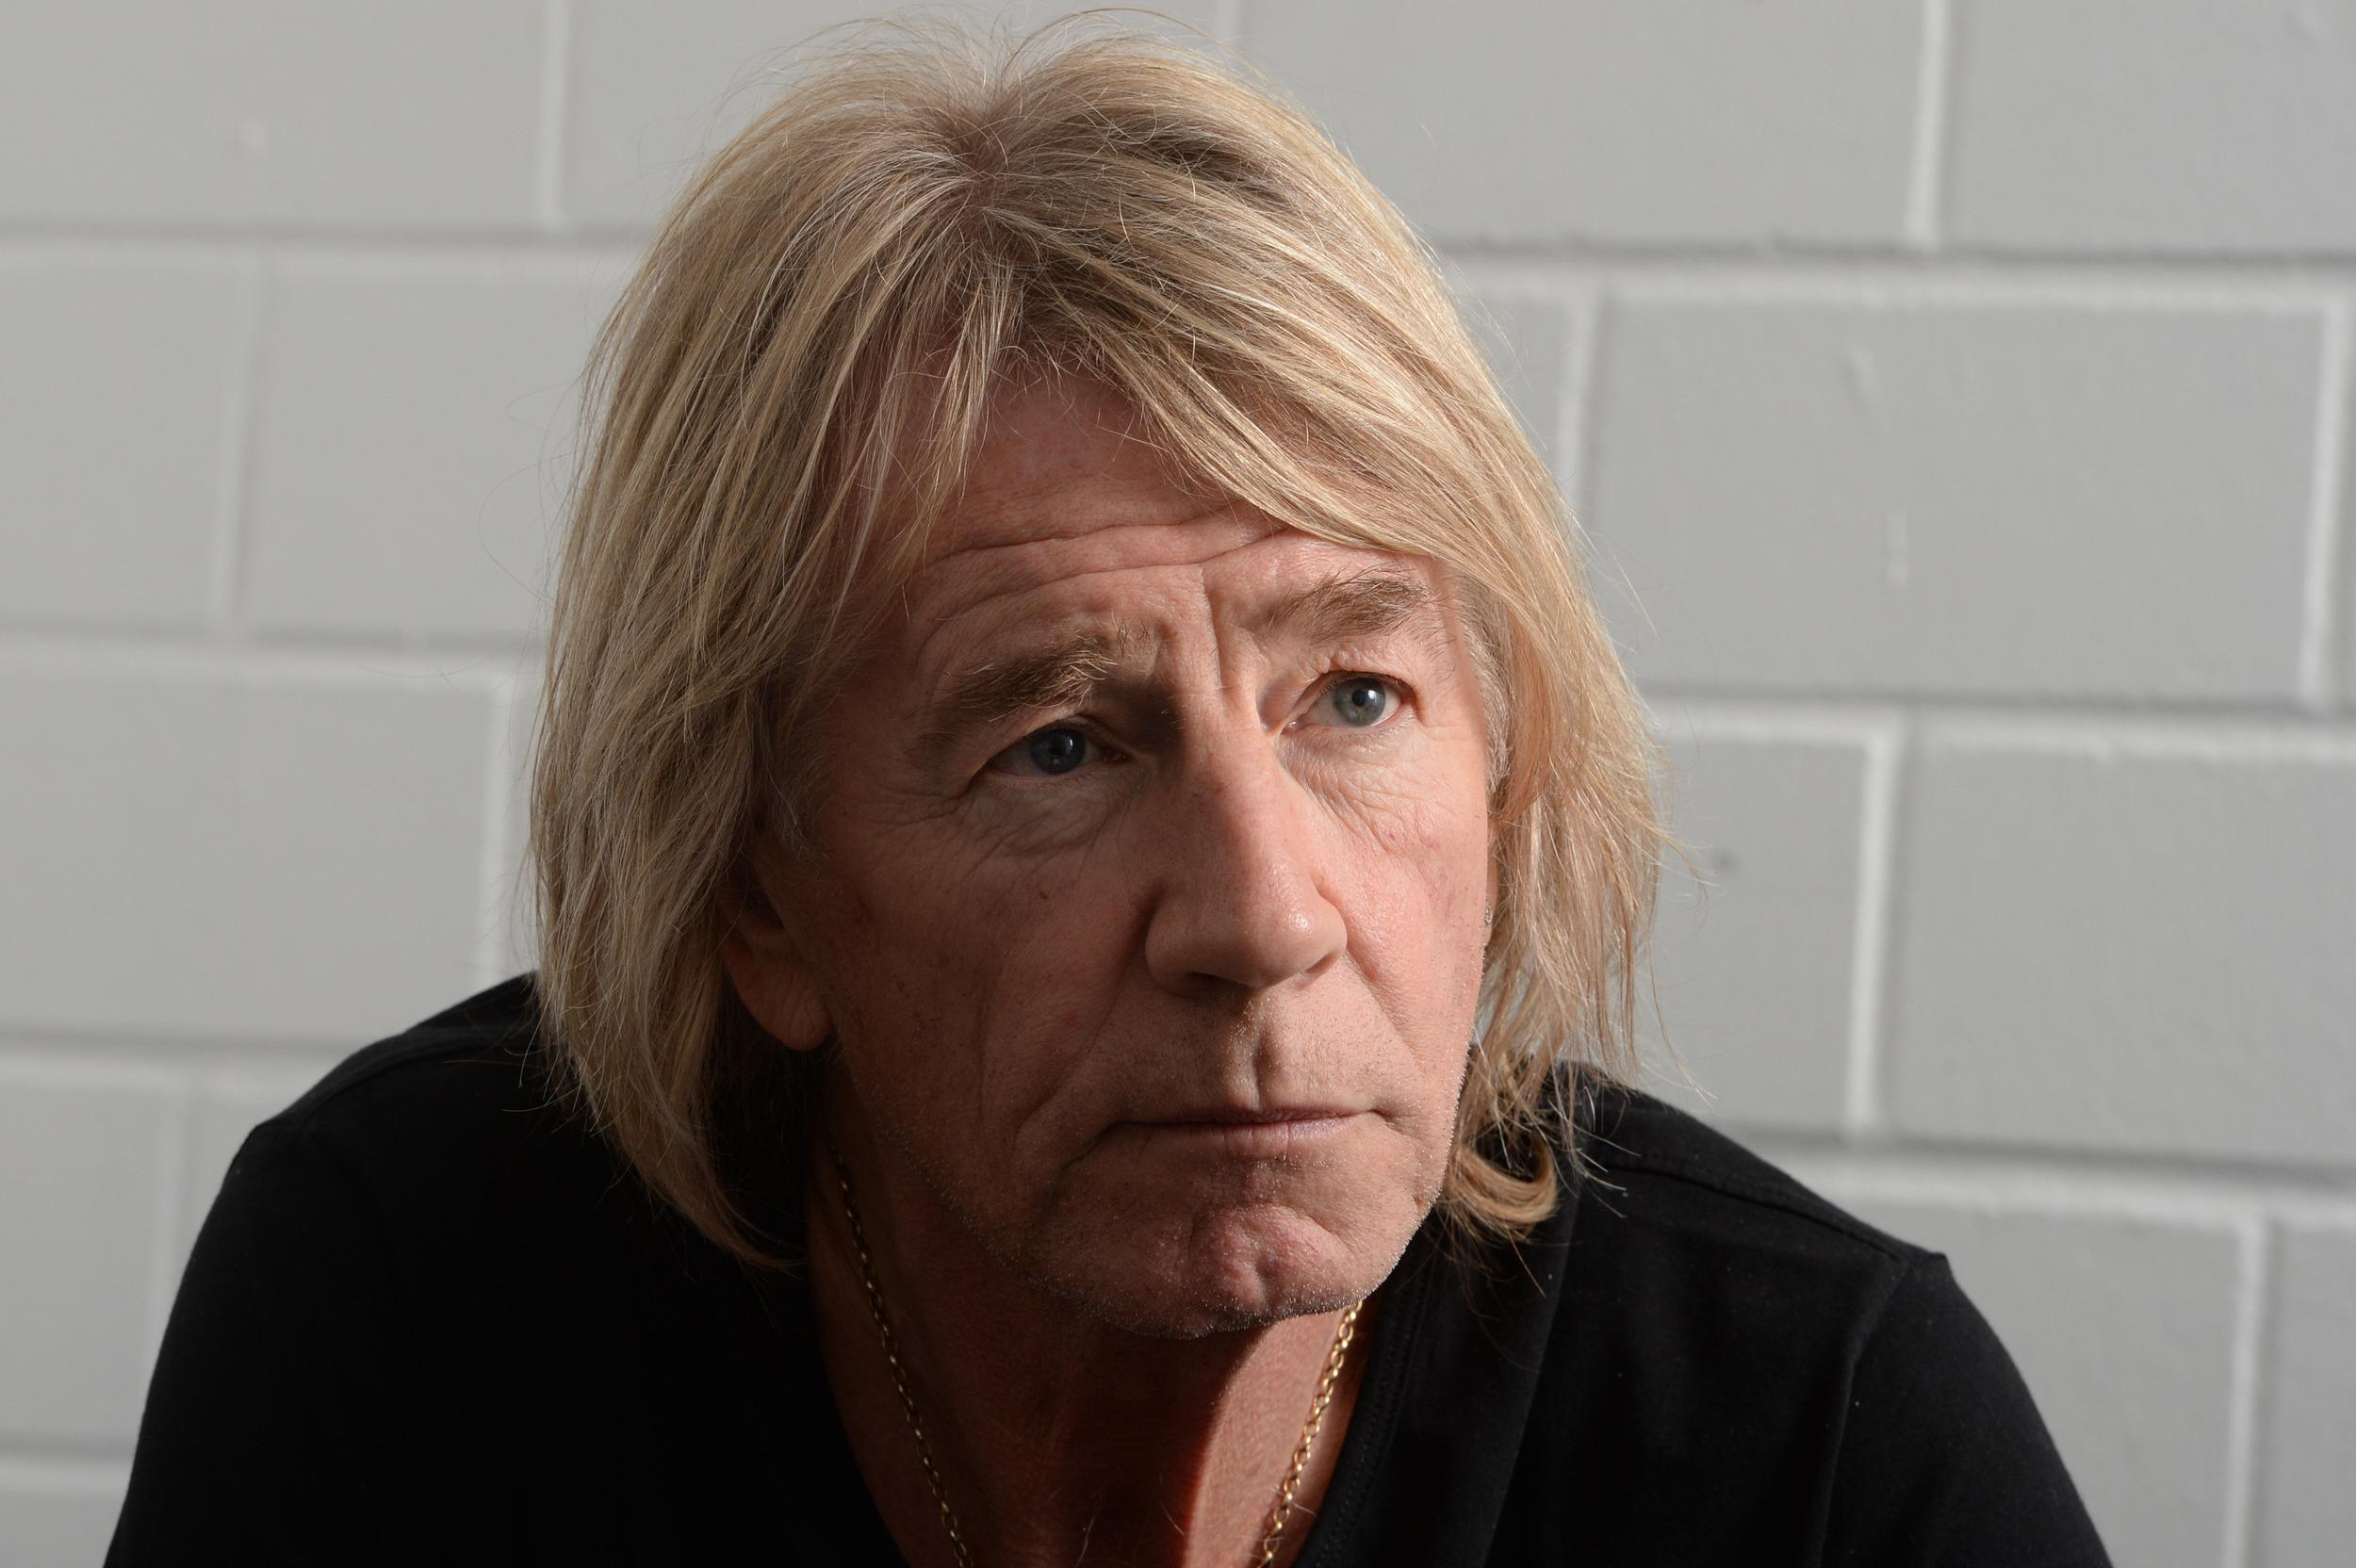 """<p>""""I'm a definitely a spender,"""" the former Status Quo guitarist Rick Parfitt told <a href=""""http://www.telegraph.co.uk/finance/personalfinance/fameandfortune/10595481/Rick-Parfitt-I-had-eight-or-nine-cars-at-any-one-time.html"""" target=""""_blank"""">The Telegraph</a> in January. """" I've never been one to save. I live for the moment and I'm fairly extravagant when it comes to people around me. In the past, I could not resist buying cars. I had a stable full of them – American cars, sport cars, limousines, everything. I spent hundreds of thousands on them. I had about eight or nine at any one time. The cars were just strewn all over the drive. I'd come out every morning, look at the weather and think, what car should I drive today?</p>  <p><strong>Advice from Jasmine Birtles, founder of moneymagpie.com: </strong></p>  <p>""""Rick and other ageing rockers wouldn't need to keep touring if they cut back on their spending and put the money instead into solid investments that grow over time and give them a regular income. It's nice to be in a position to spend on the things you love but it's a bit pointless spending so much that you have to keep working just to feed your spending habit. I always tell people to think about what they love and spend on that but save on things that don't matter so much so that you can put money into savings and investments to work for you.""""</p>  <p></p>  <p></p>"""